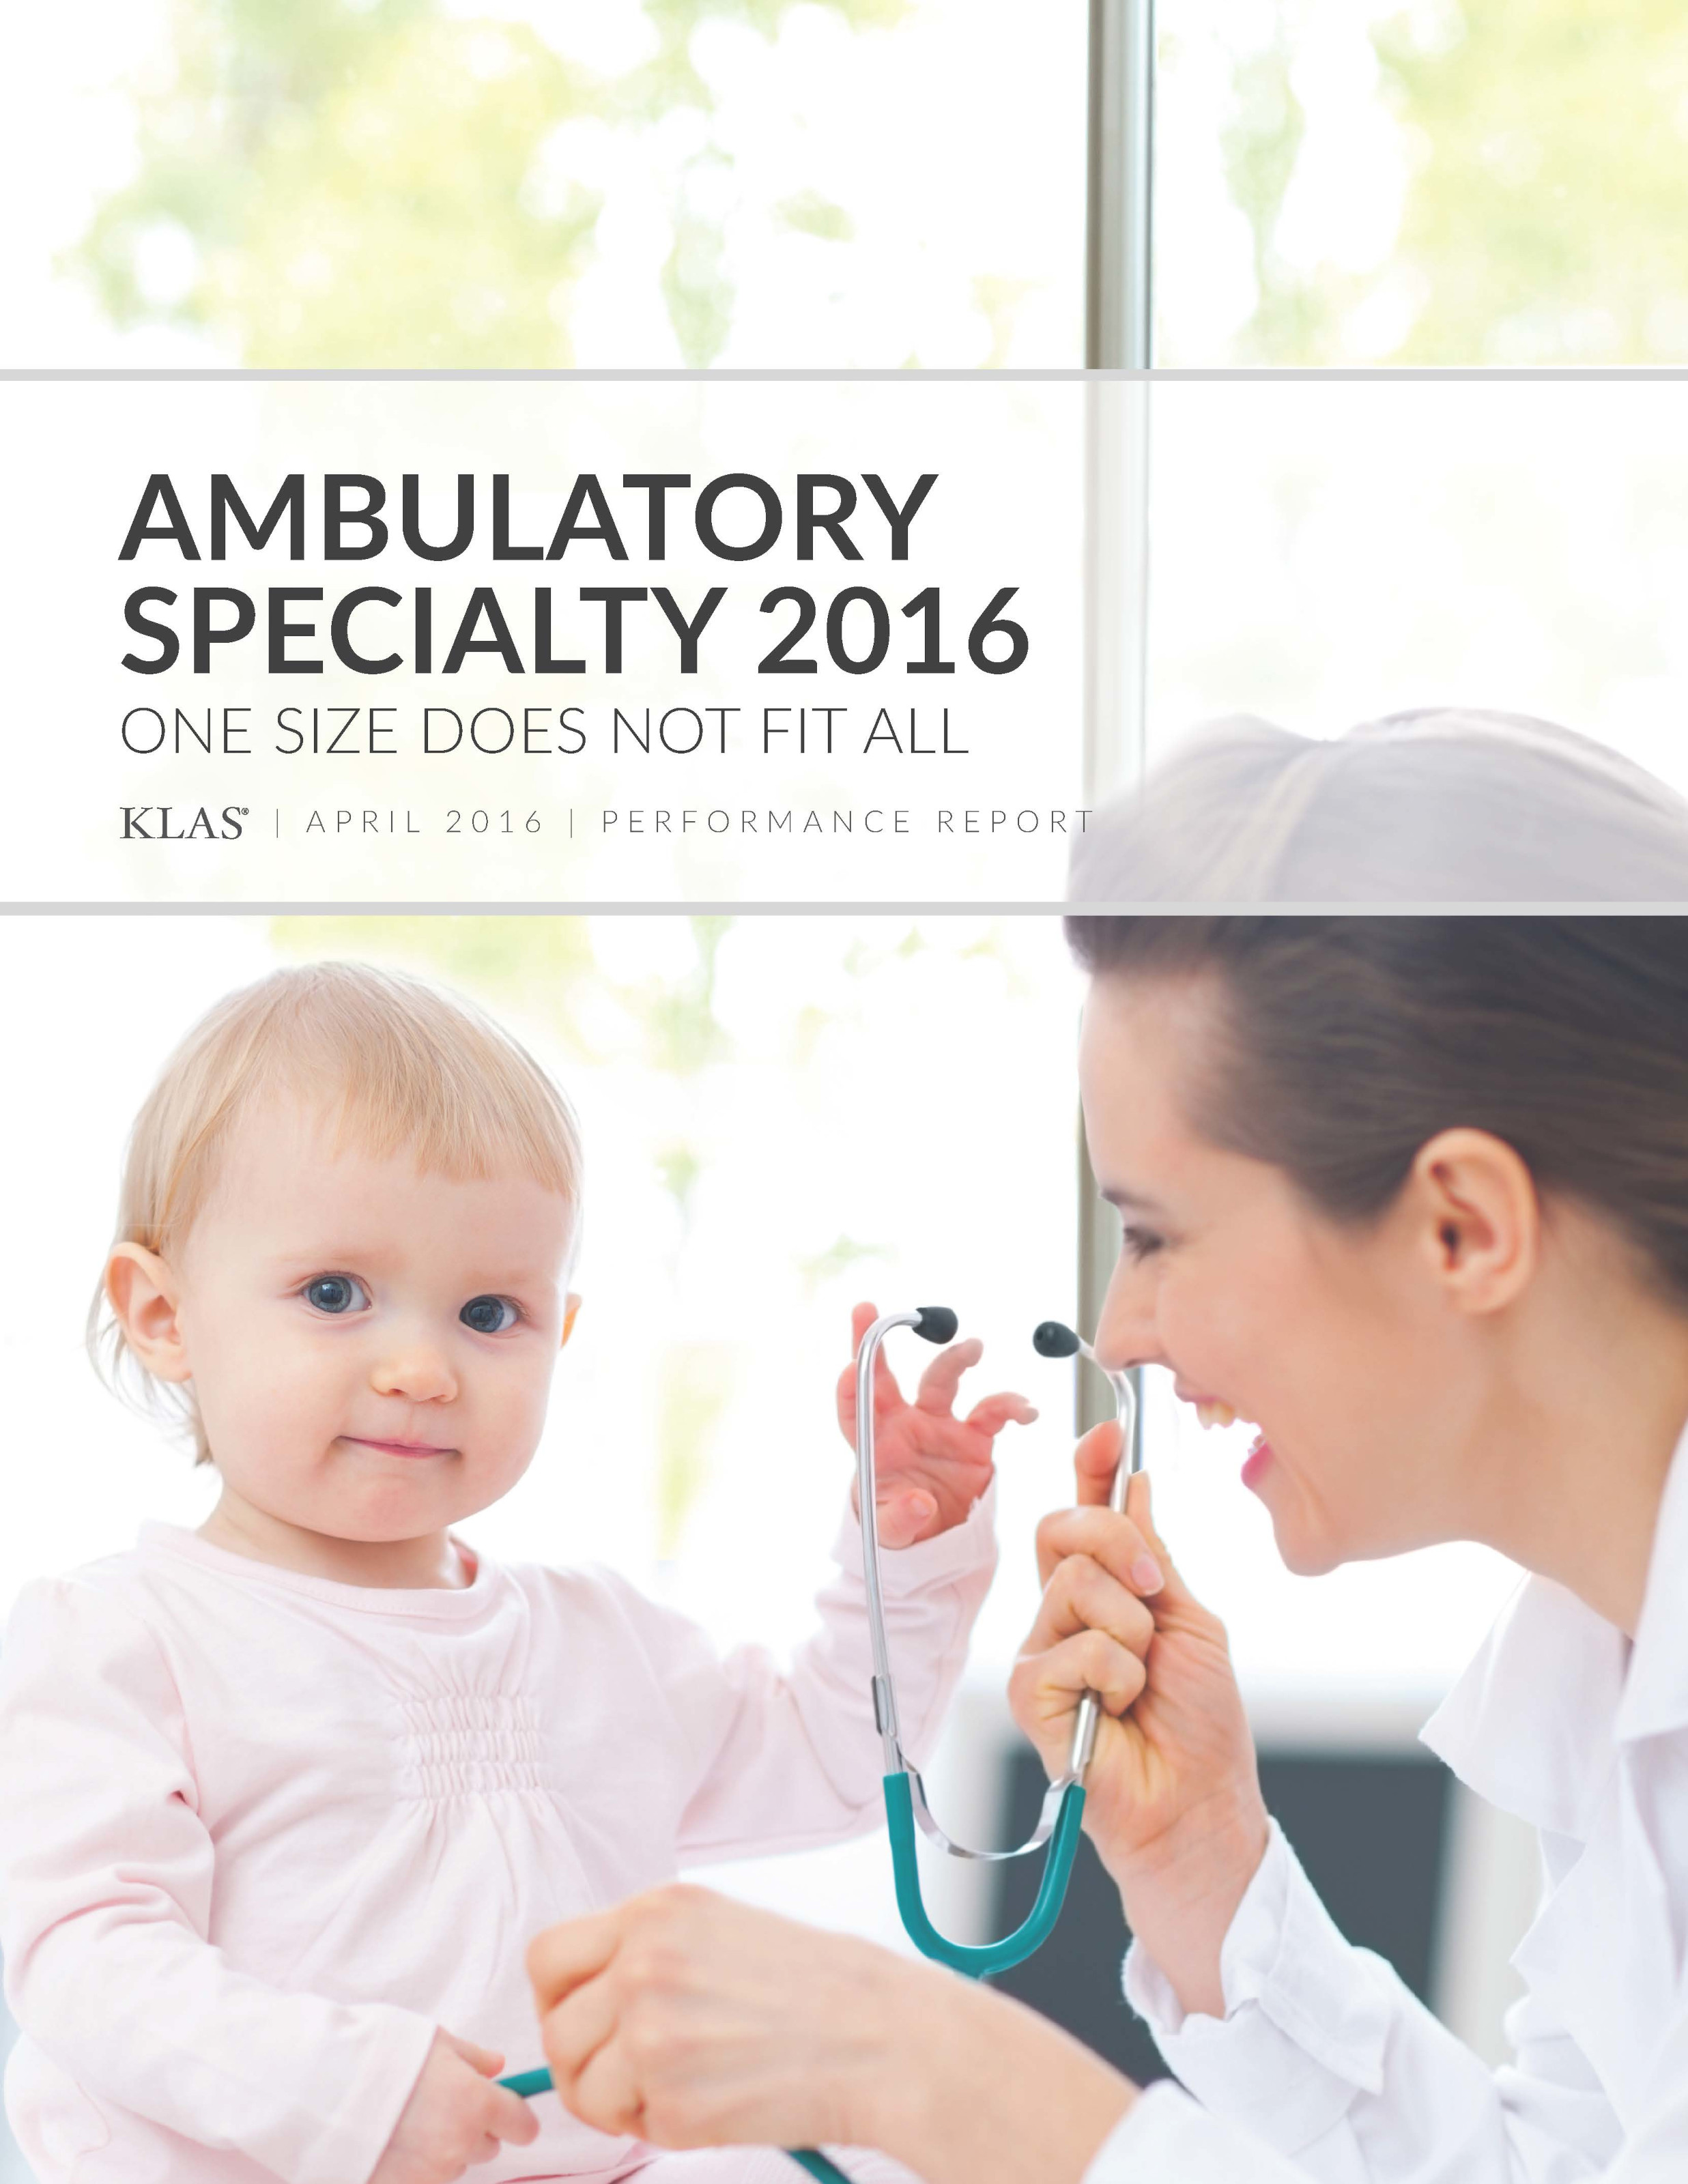 Ambulatory Specialty 2016